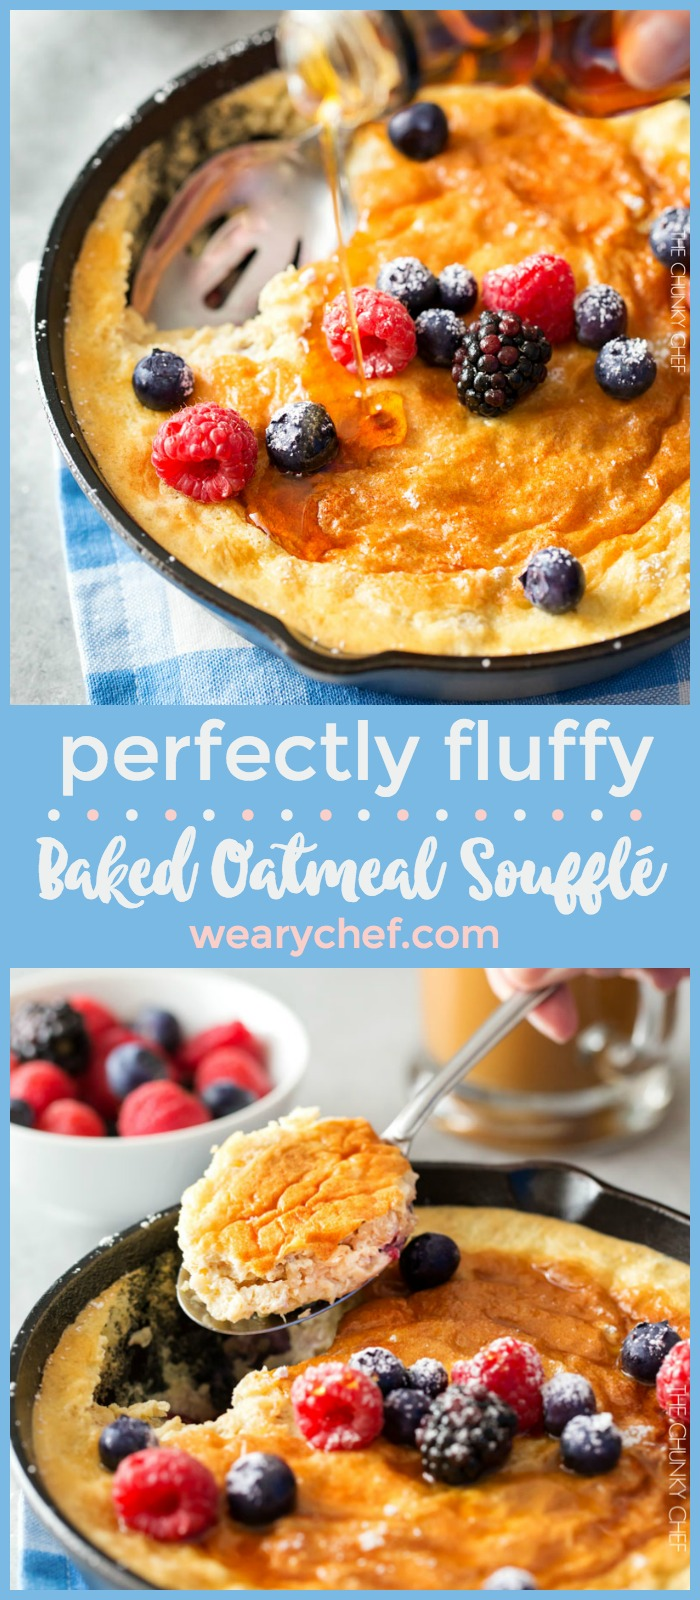 This fluffy oatmeal soufflé is delicious for breakfast or brunch. Don't be intimidated by the name. It's easy to make, and your family and friends will love it!